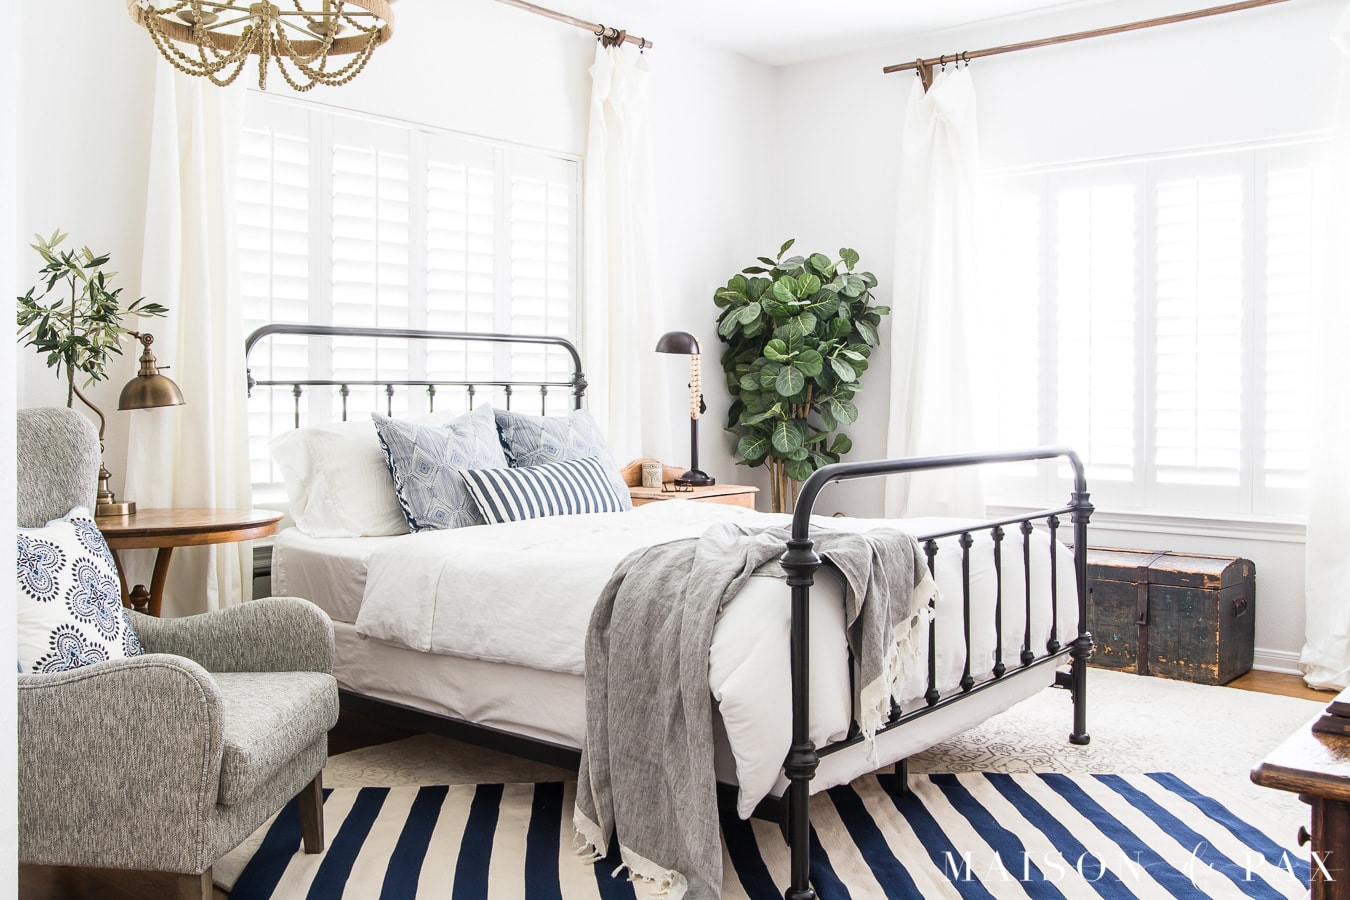 Navy And White Striped Rug Layered In Bedroom